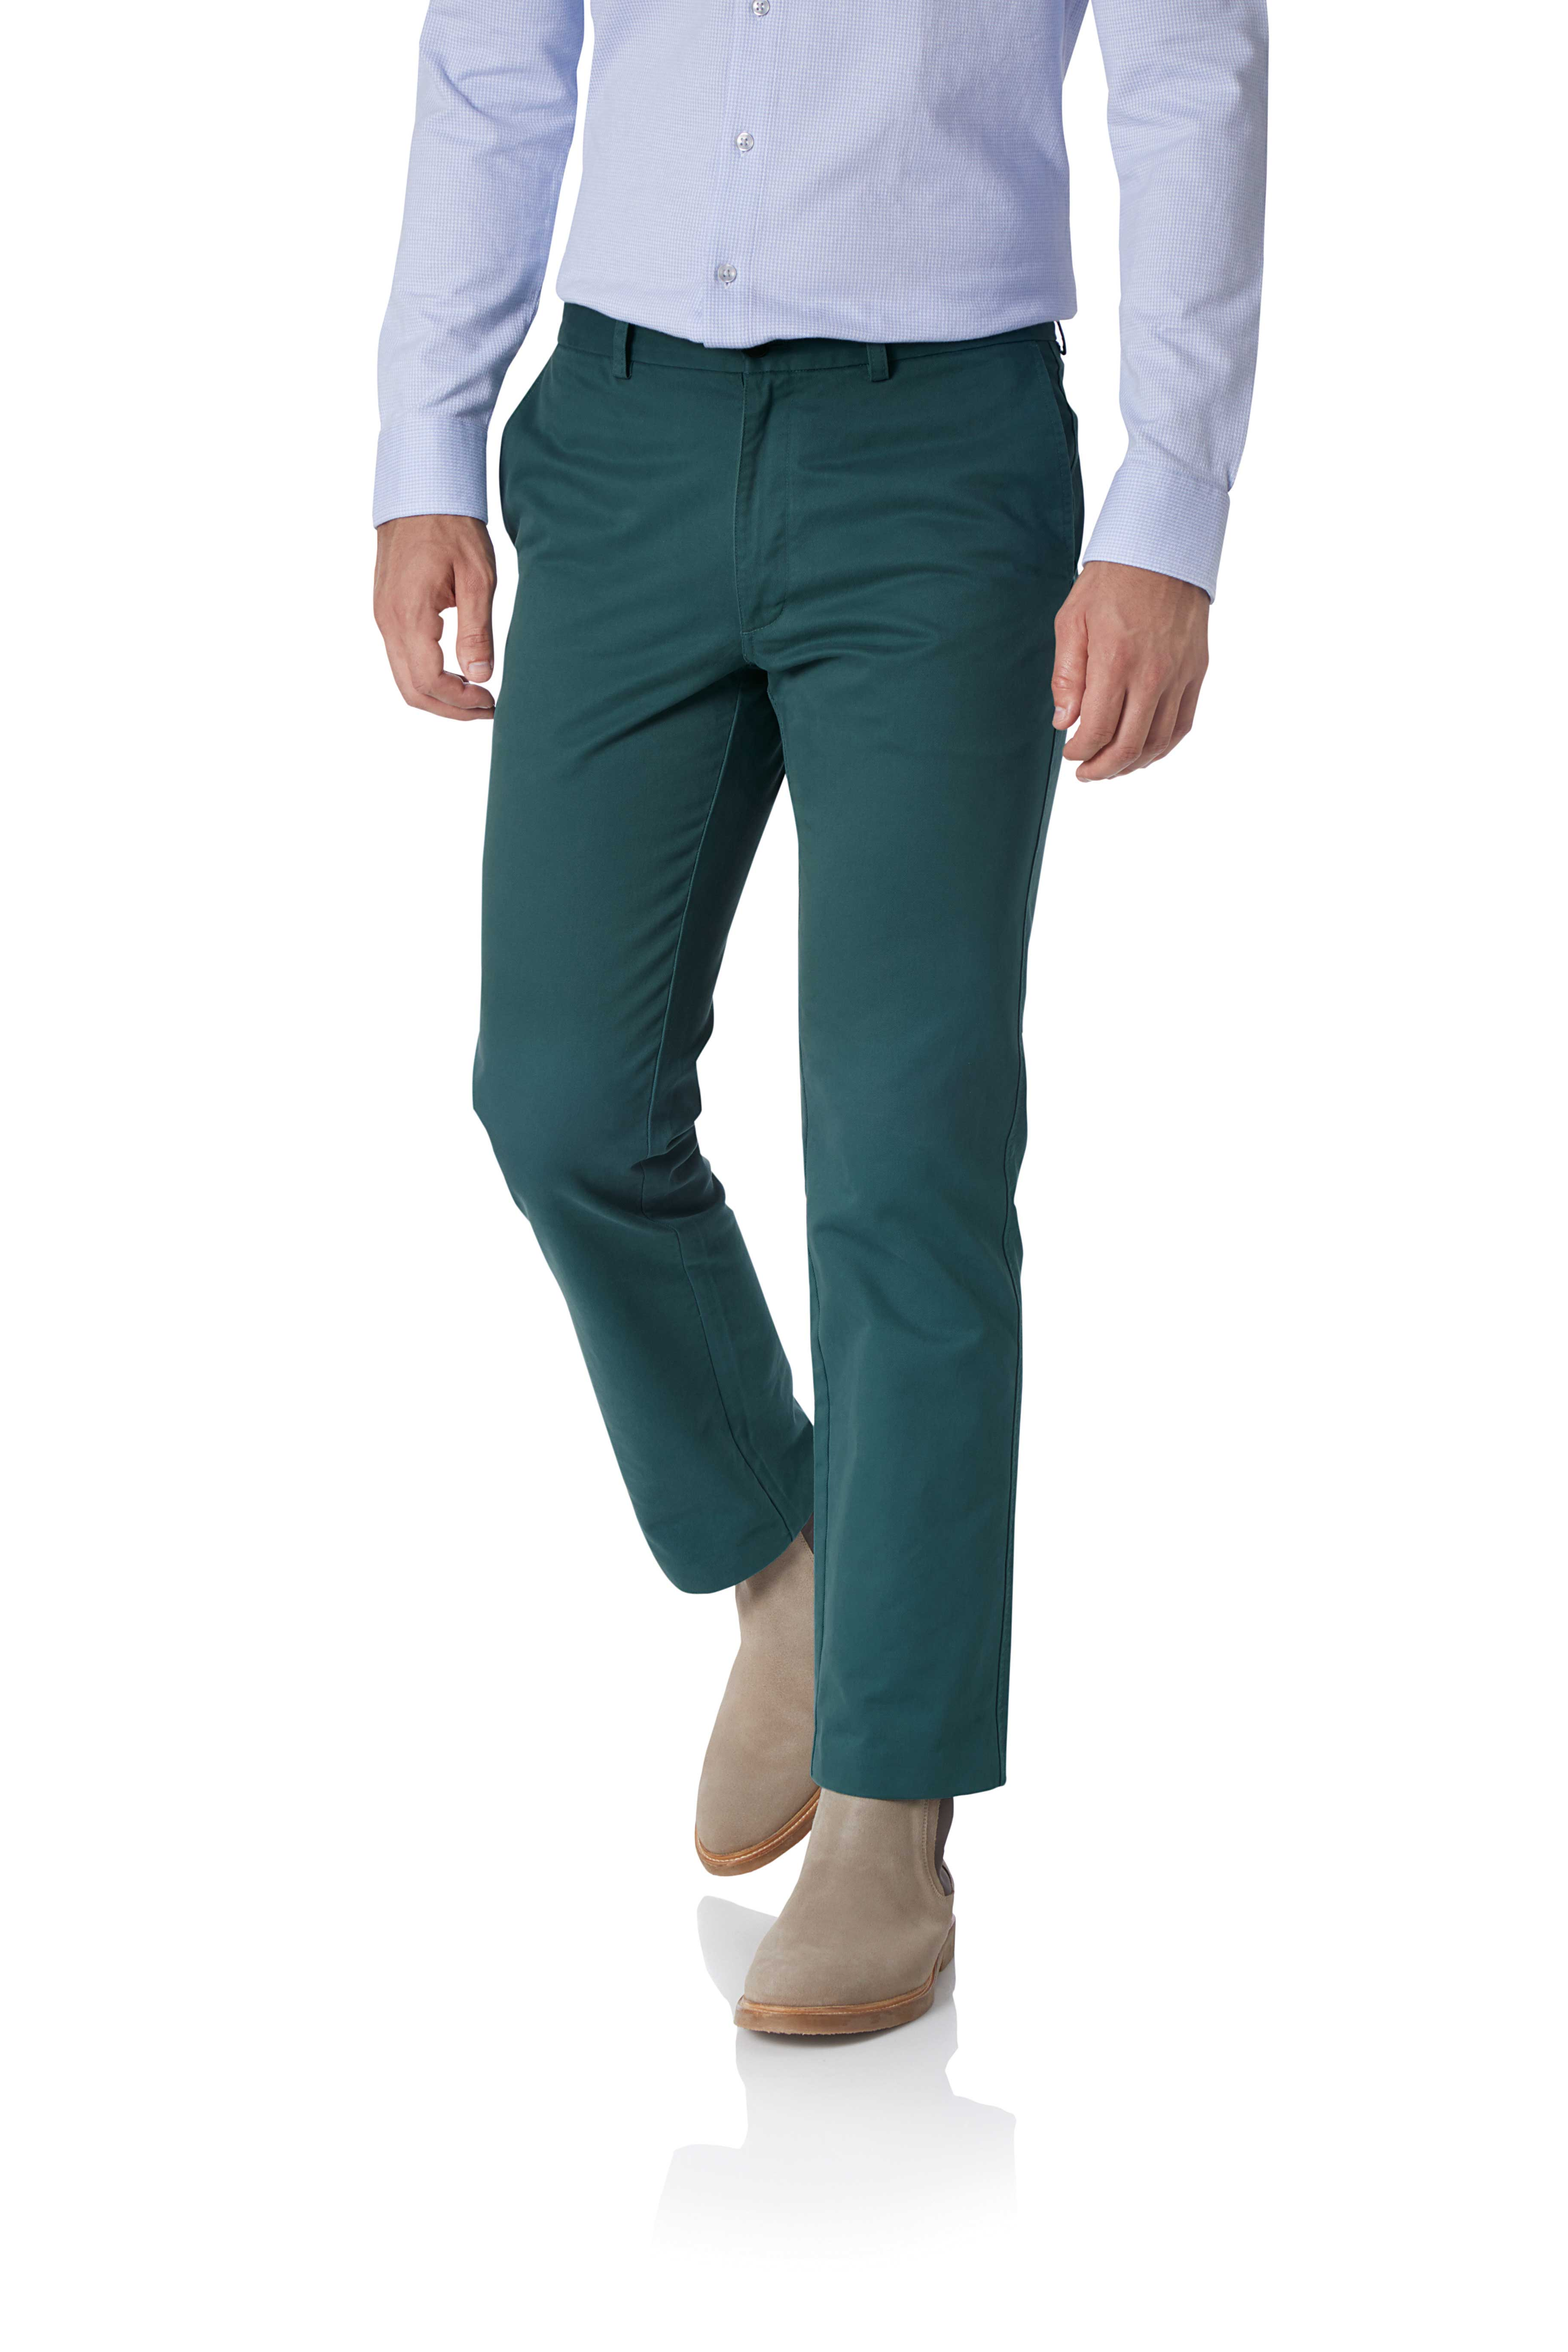 Teal Slim Fit Flat Front Washed Cotton Chino Trousers Size W38 L32 by Charles Tyrwhitt